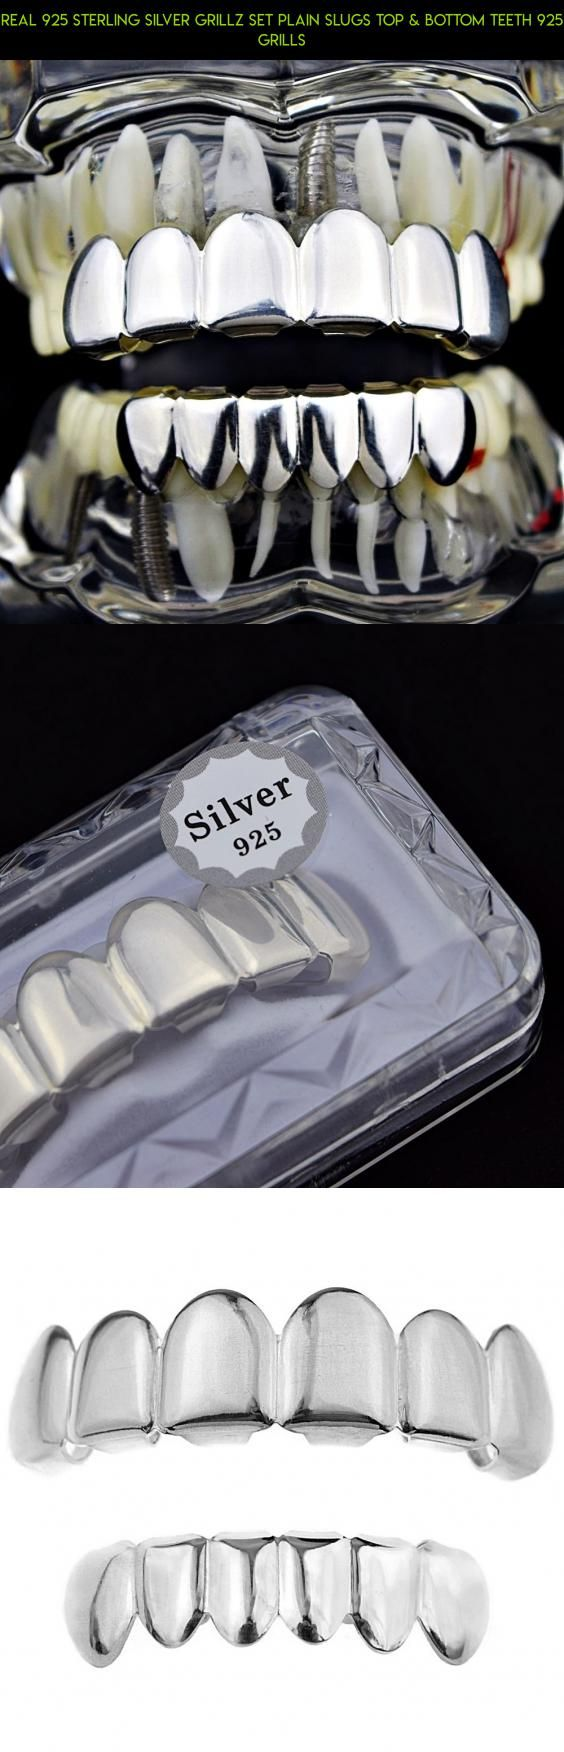 Real 925 Sterling Silver Grillz Set Plain Slugs Top & Bottom Teeth 925 Grills #parts #kit #gadgets #set #technology #shopping #drone #camera #products #fpv #racing #grills #plans #tech